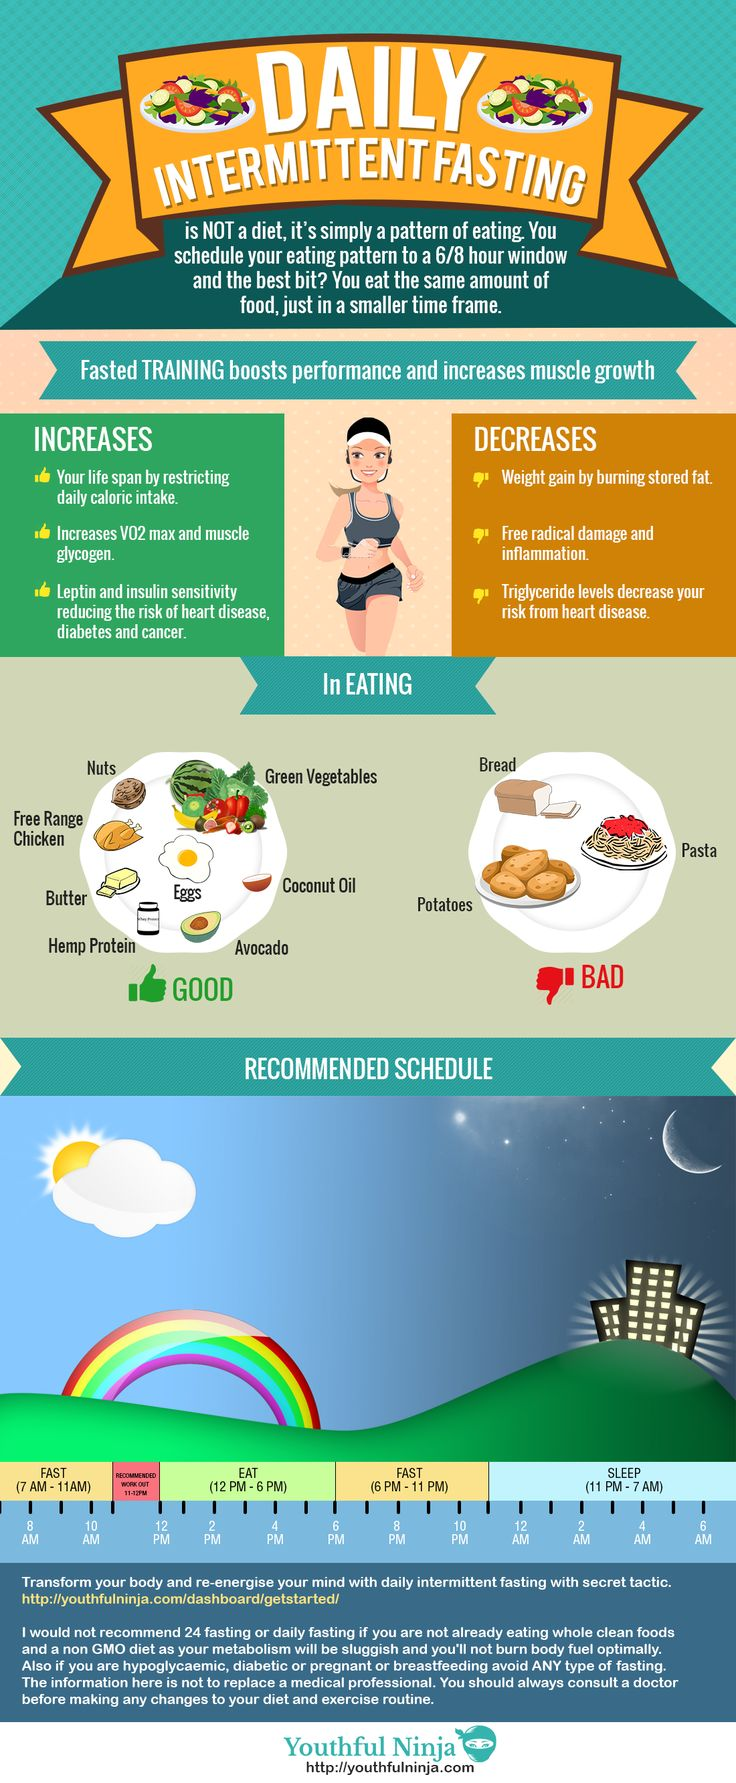 Best 25+ 16 8 diet ideas on Pinterest | 16 8 fast, 8 hour diet and 8 hours